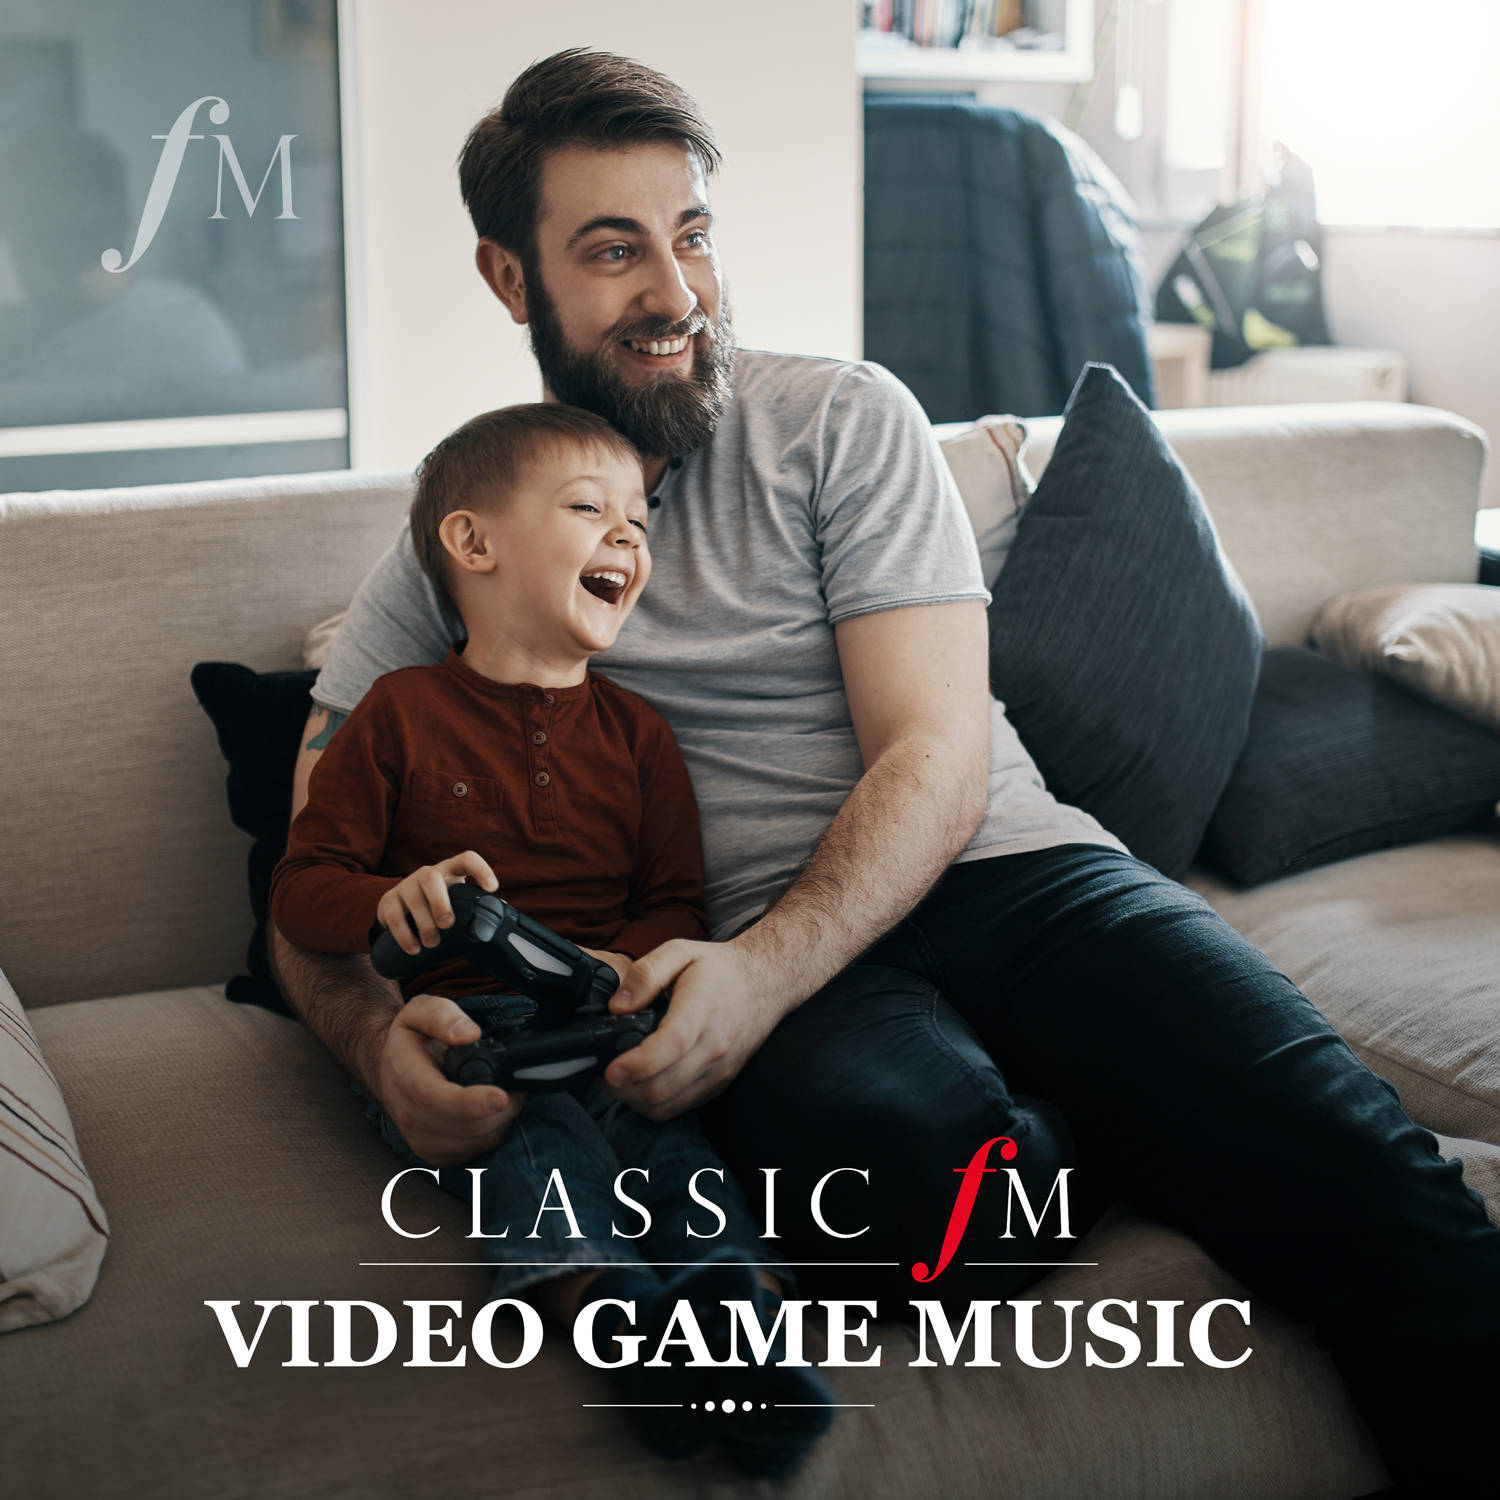 Classic FM Video Game Music image